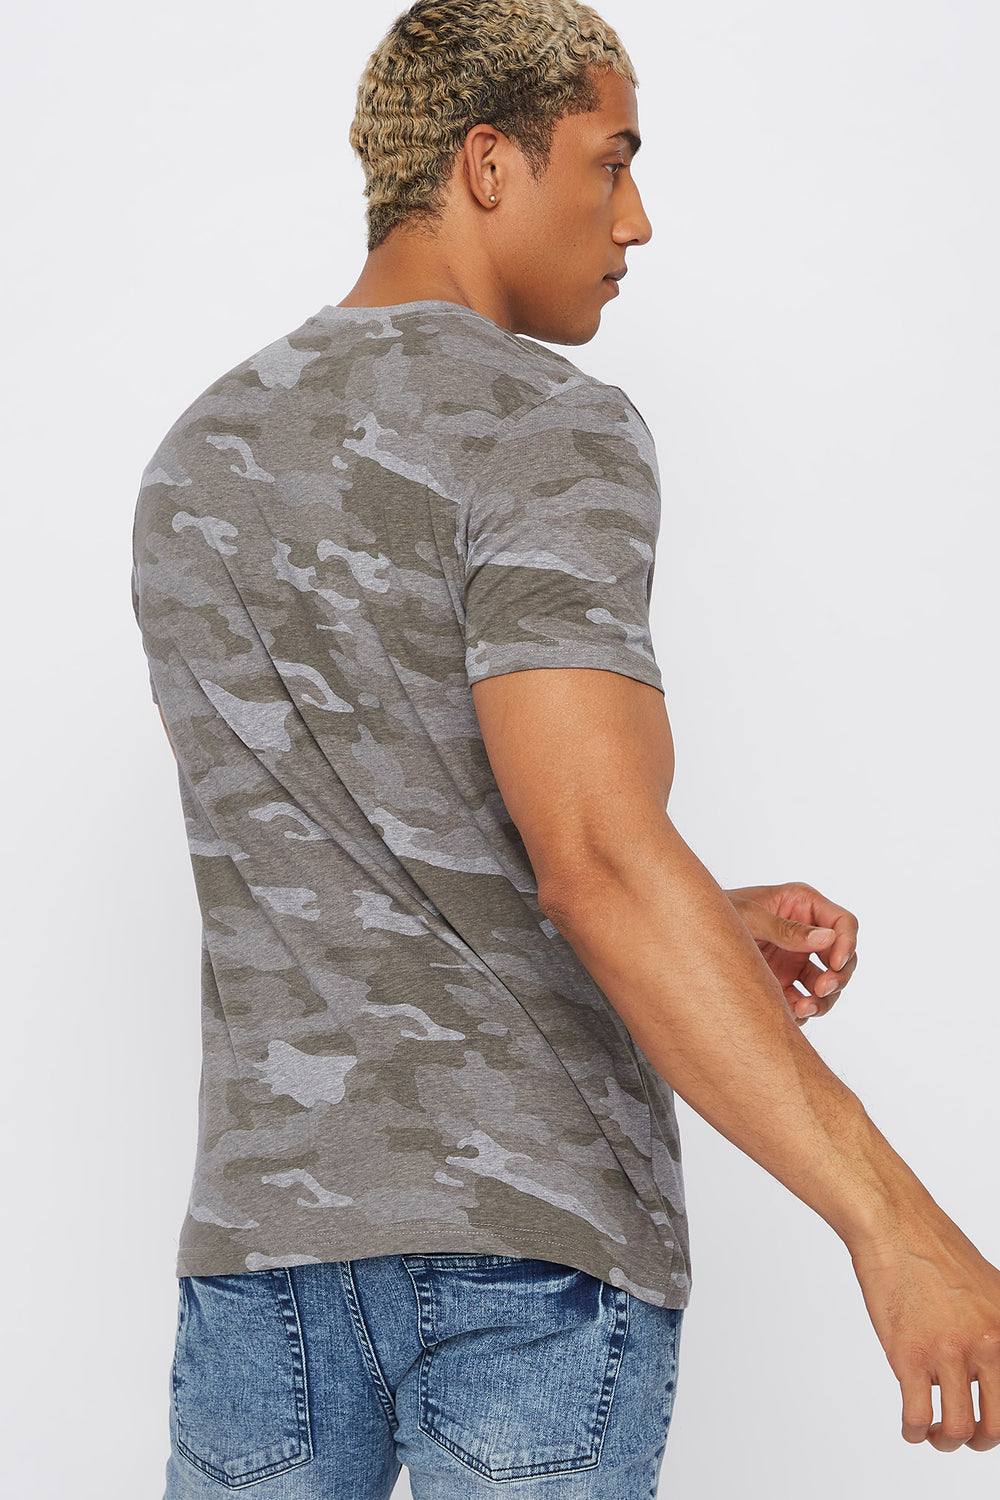 Camo Savage T-Shirt Gingham